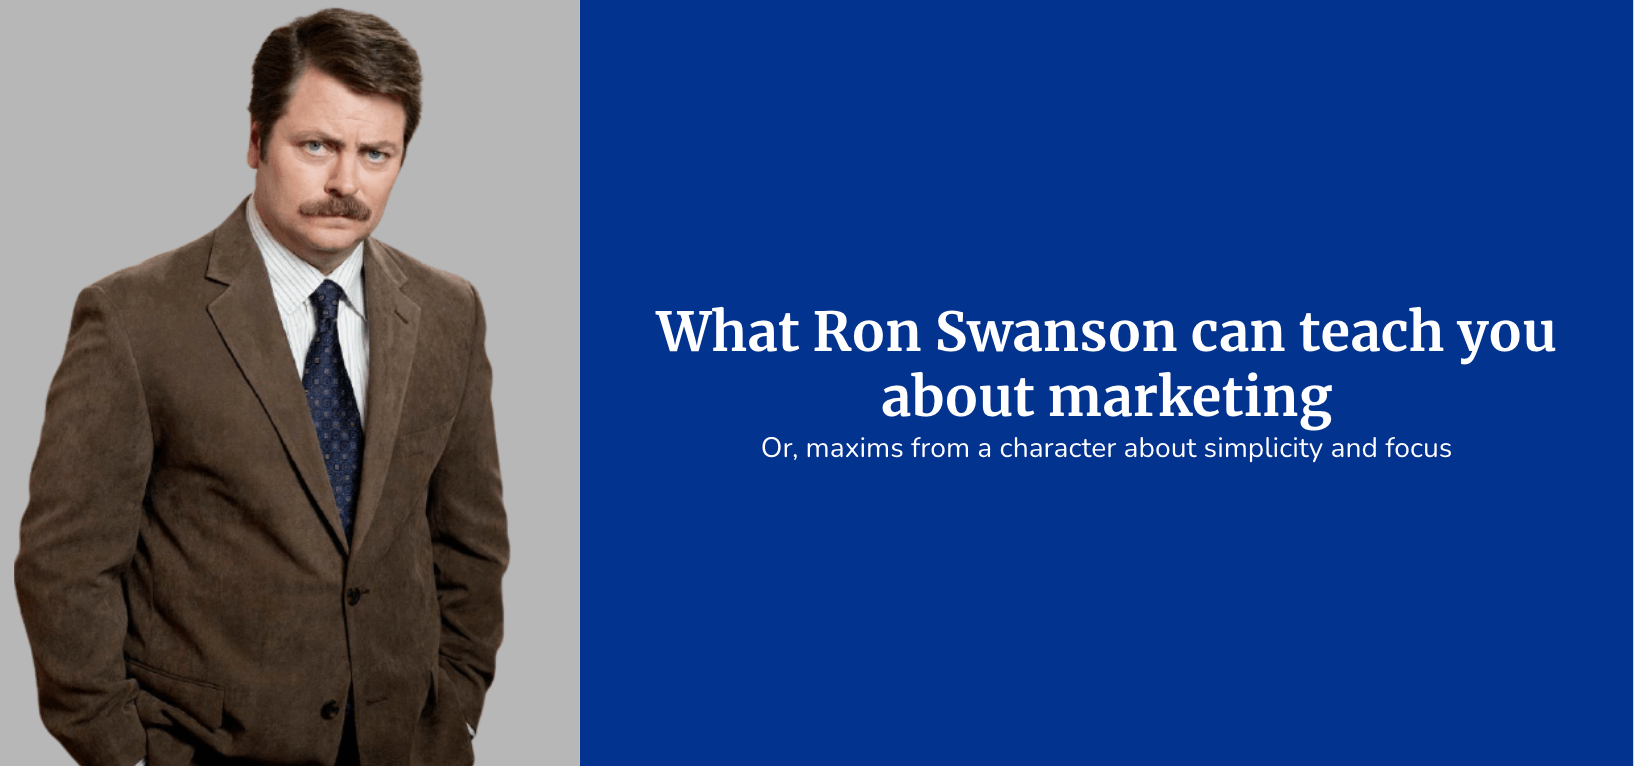 (Image - side by side of a picture of Ron Swanson next to text over a blue block) - What Ron Swanson can teach you about marketing